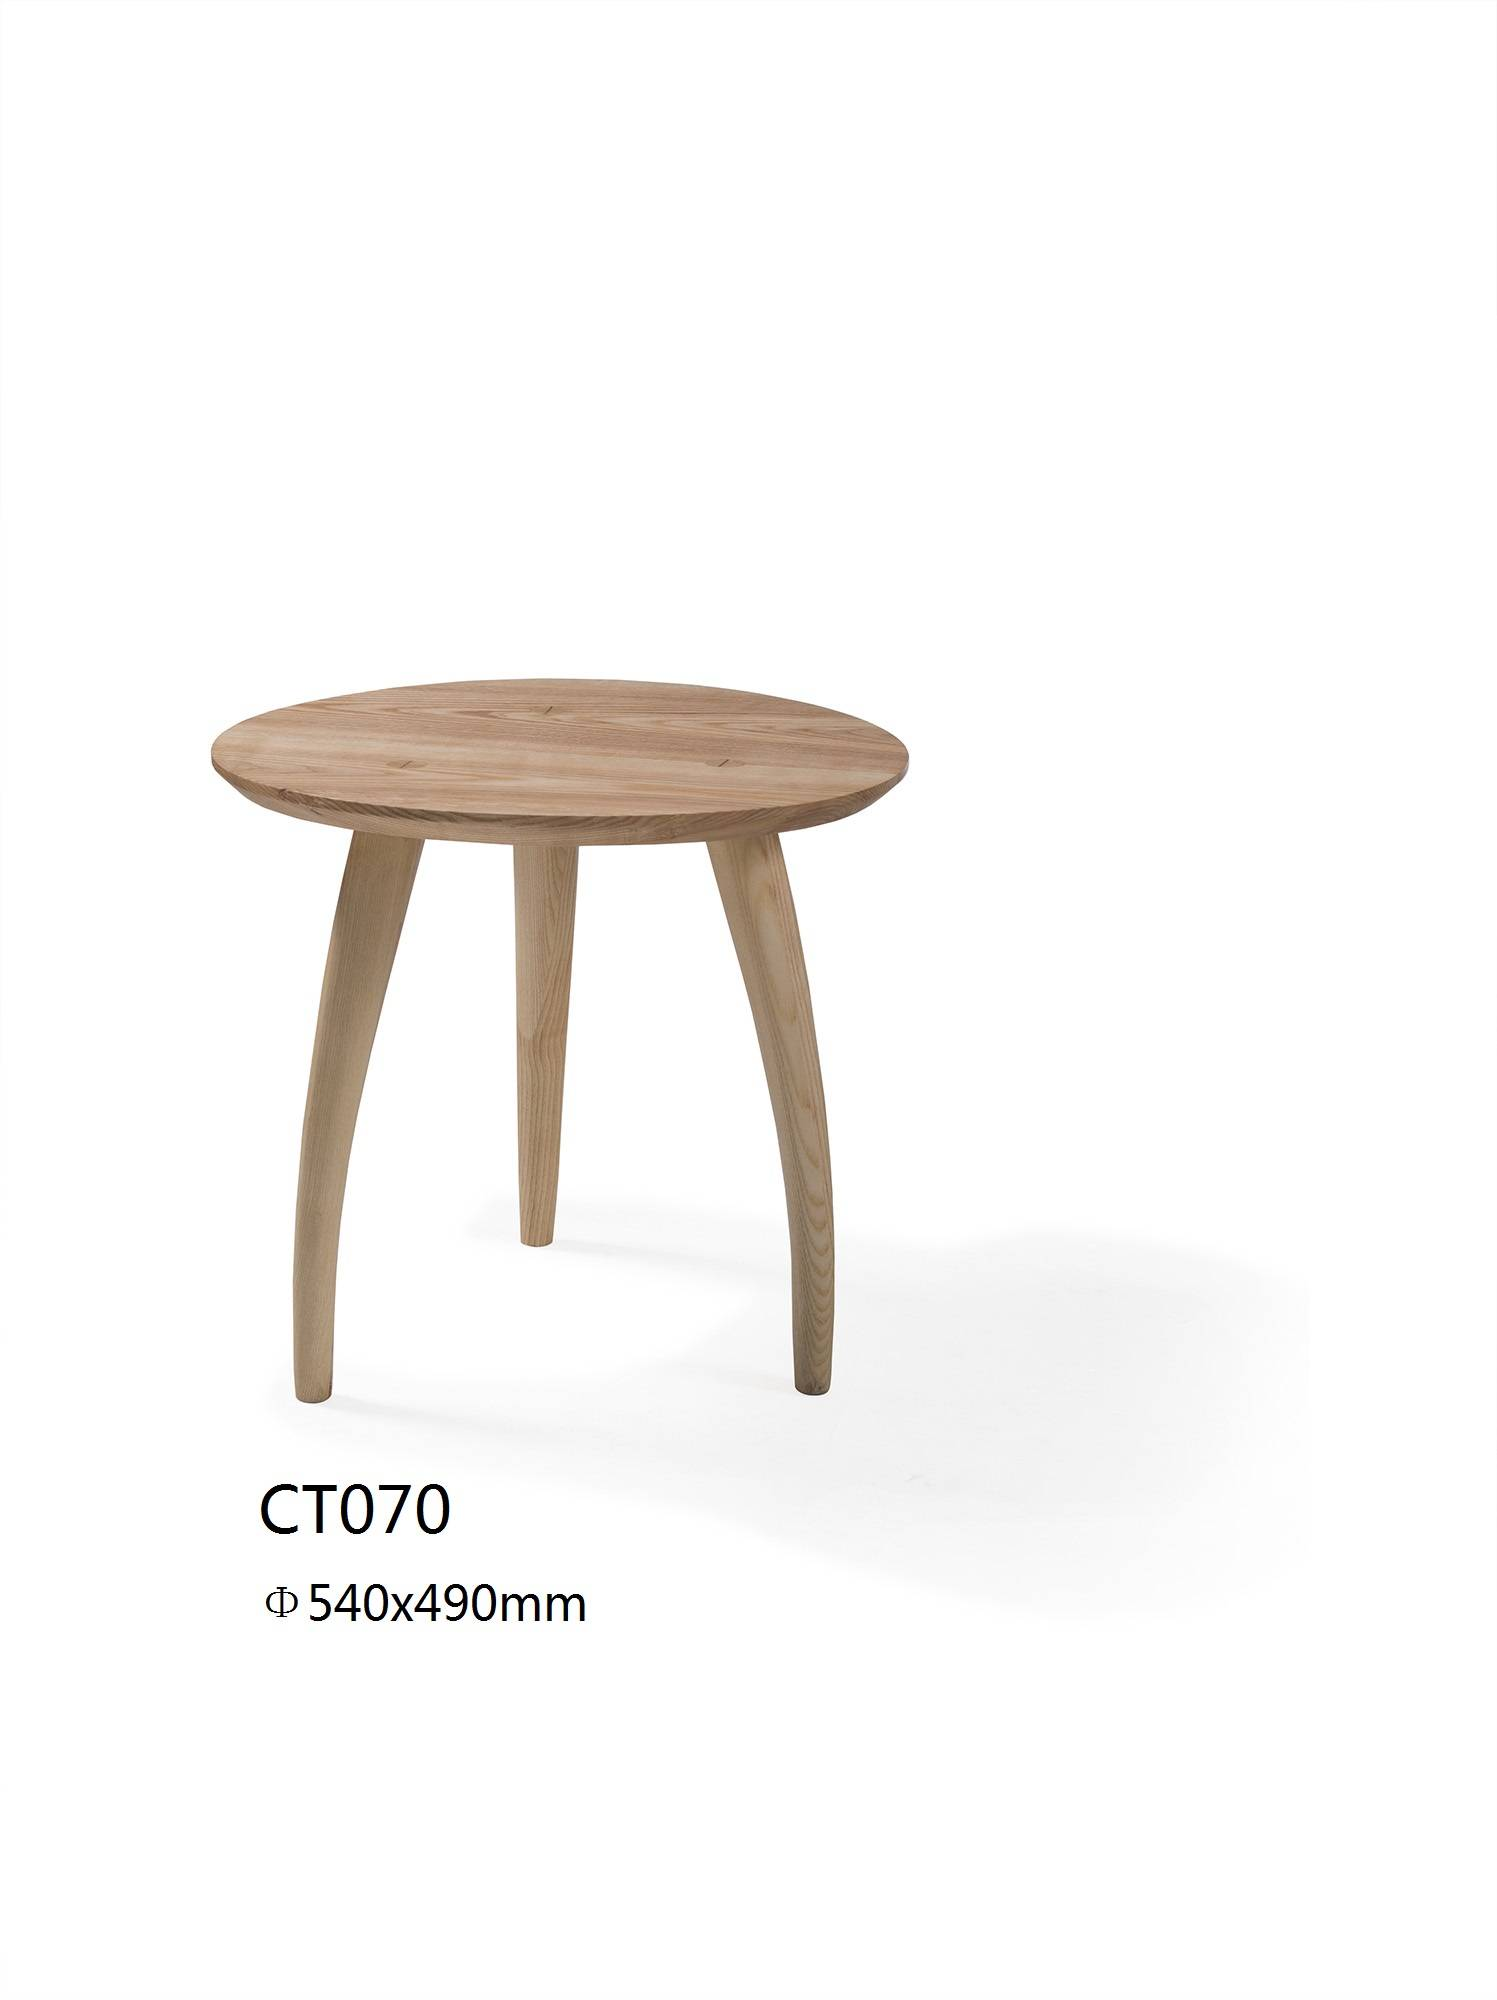 NEW coffee table for solid wooden furniture